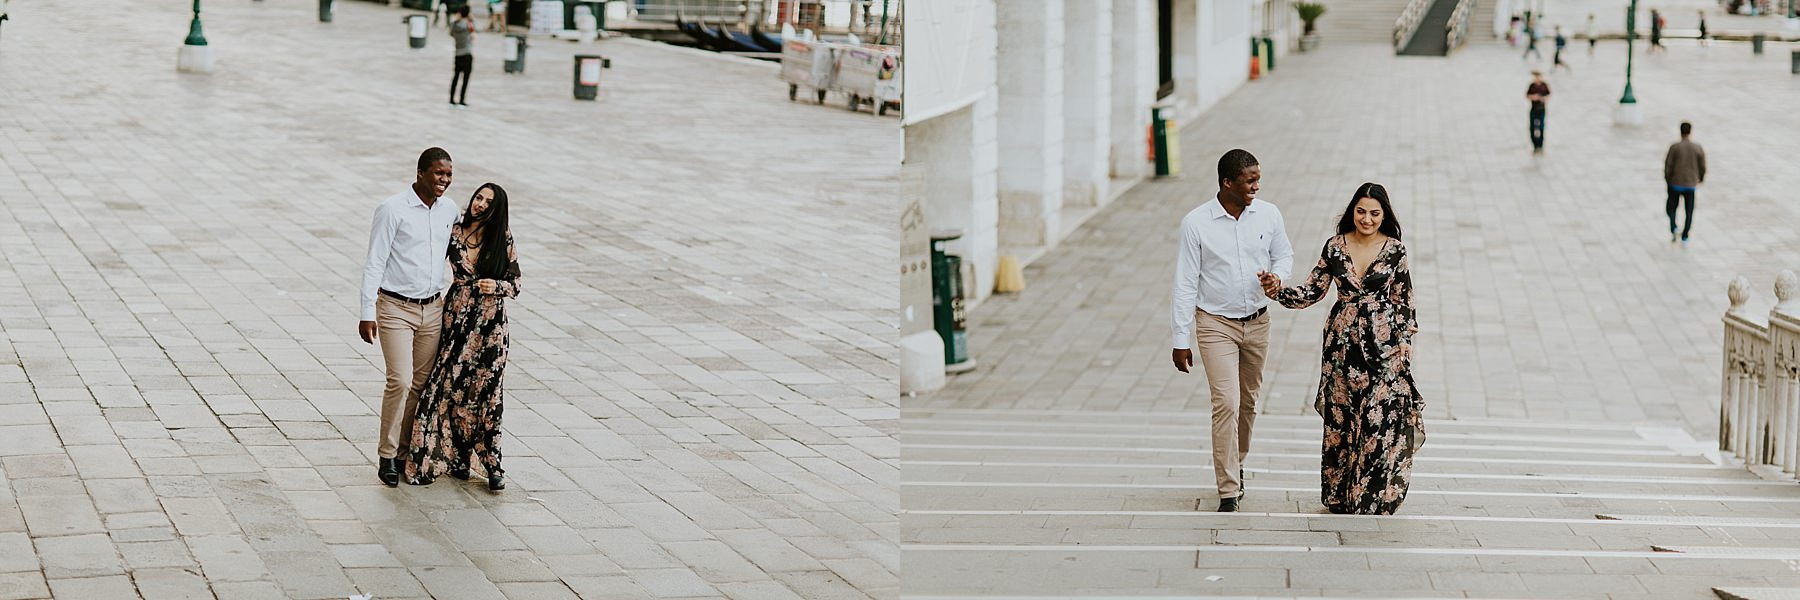 walking in Venice for Honeymoon photo session